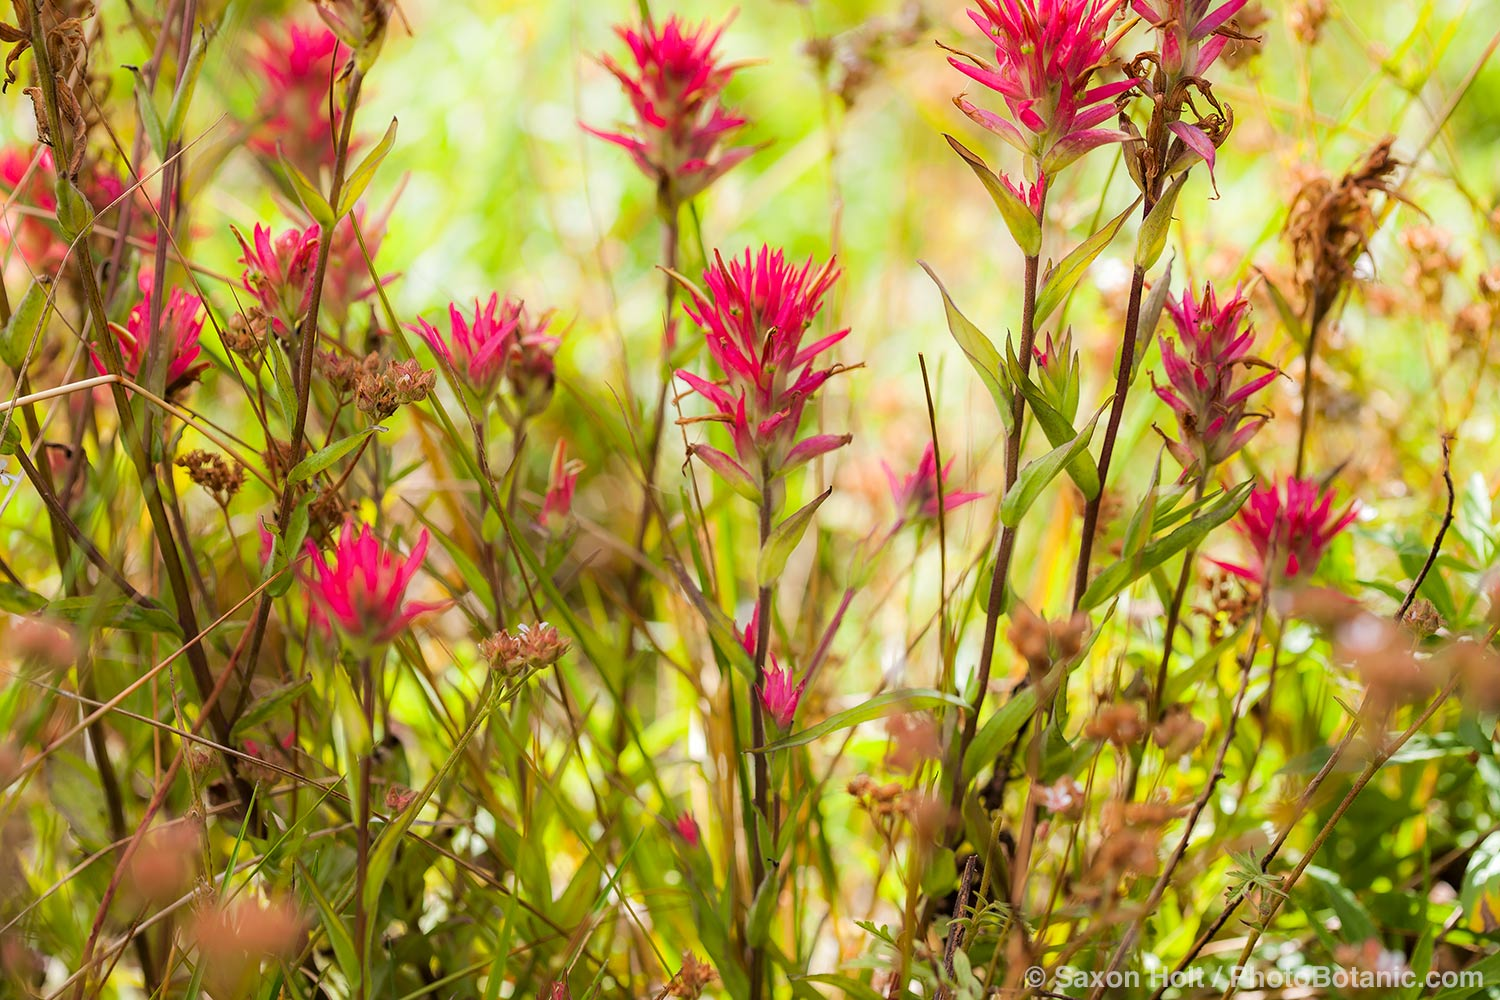 Castilleja miniata -  Great Red Paintbrush,  scarlet paintbrush, flowering wildflower, California native plant meadow